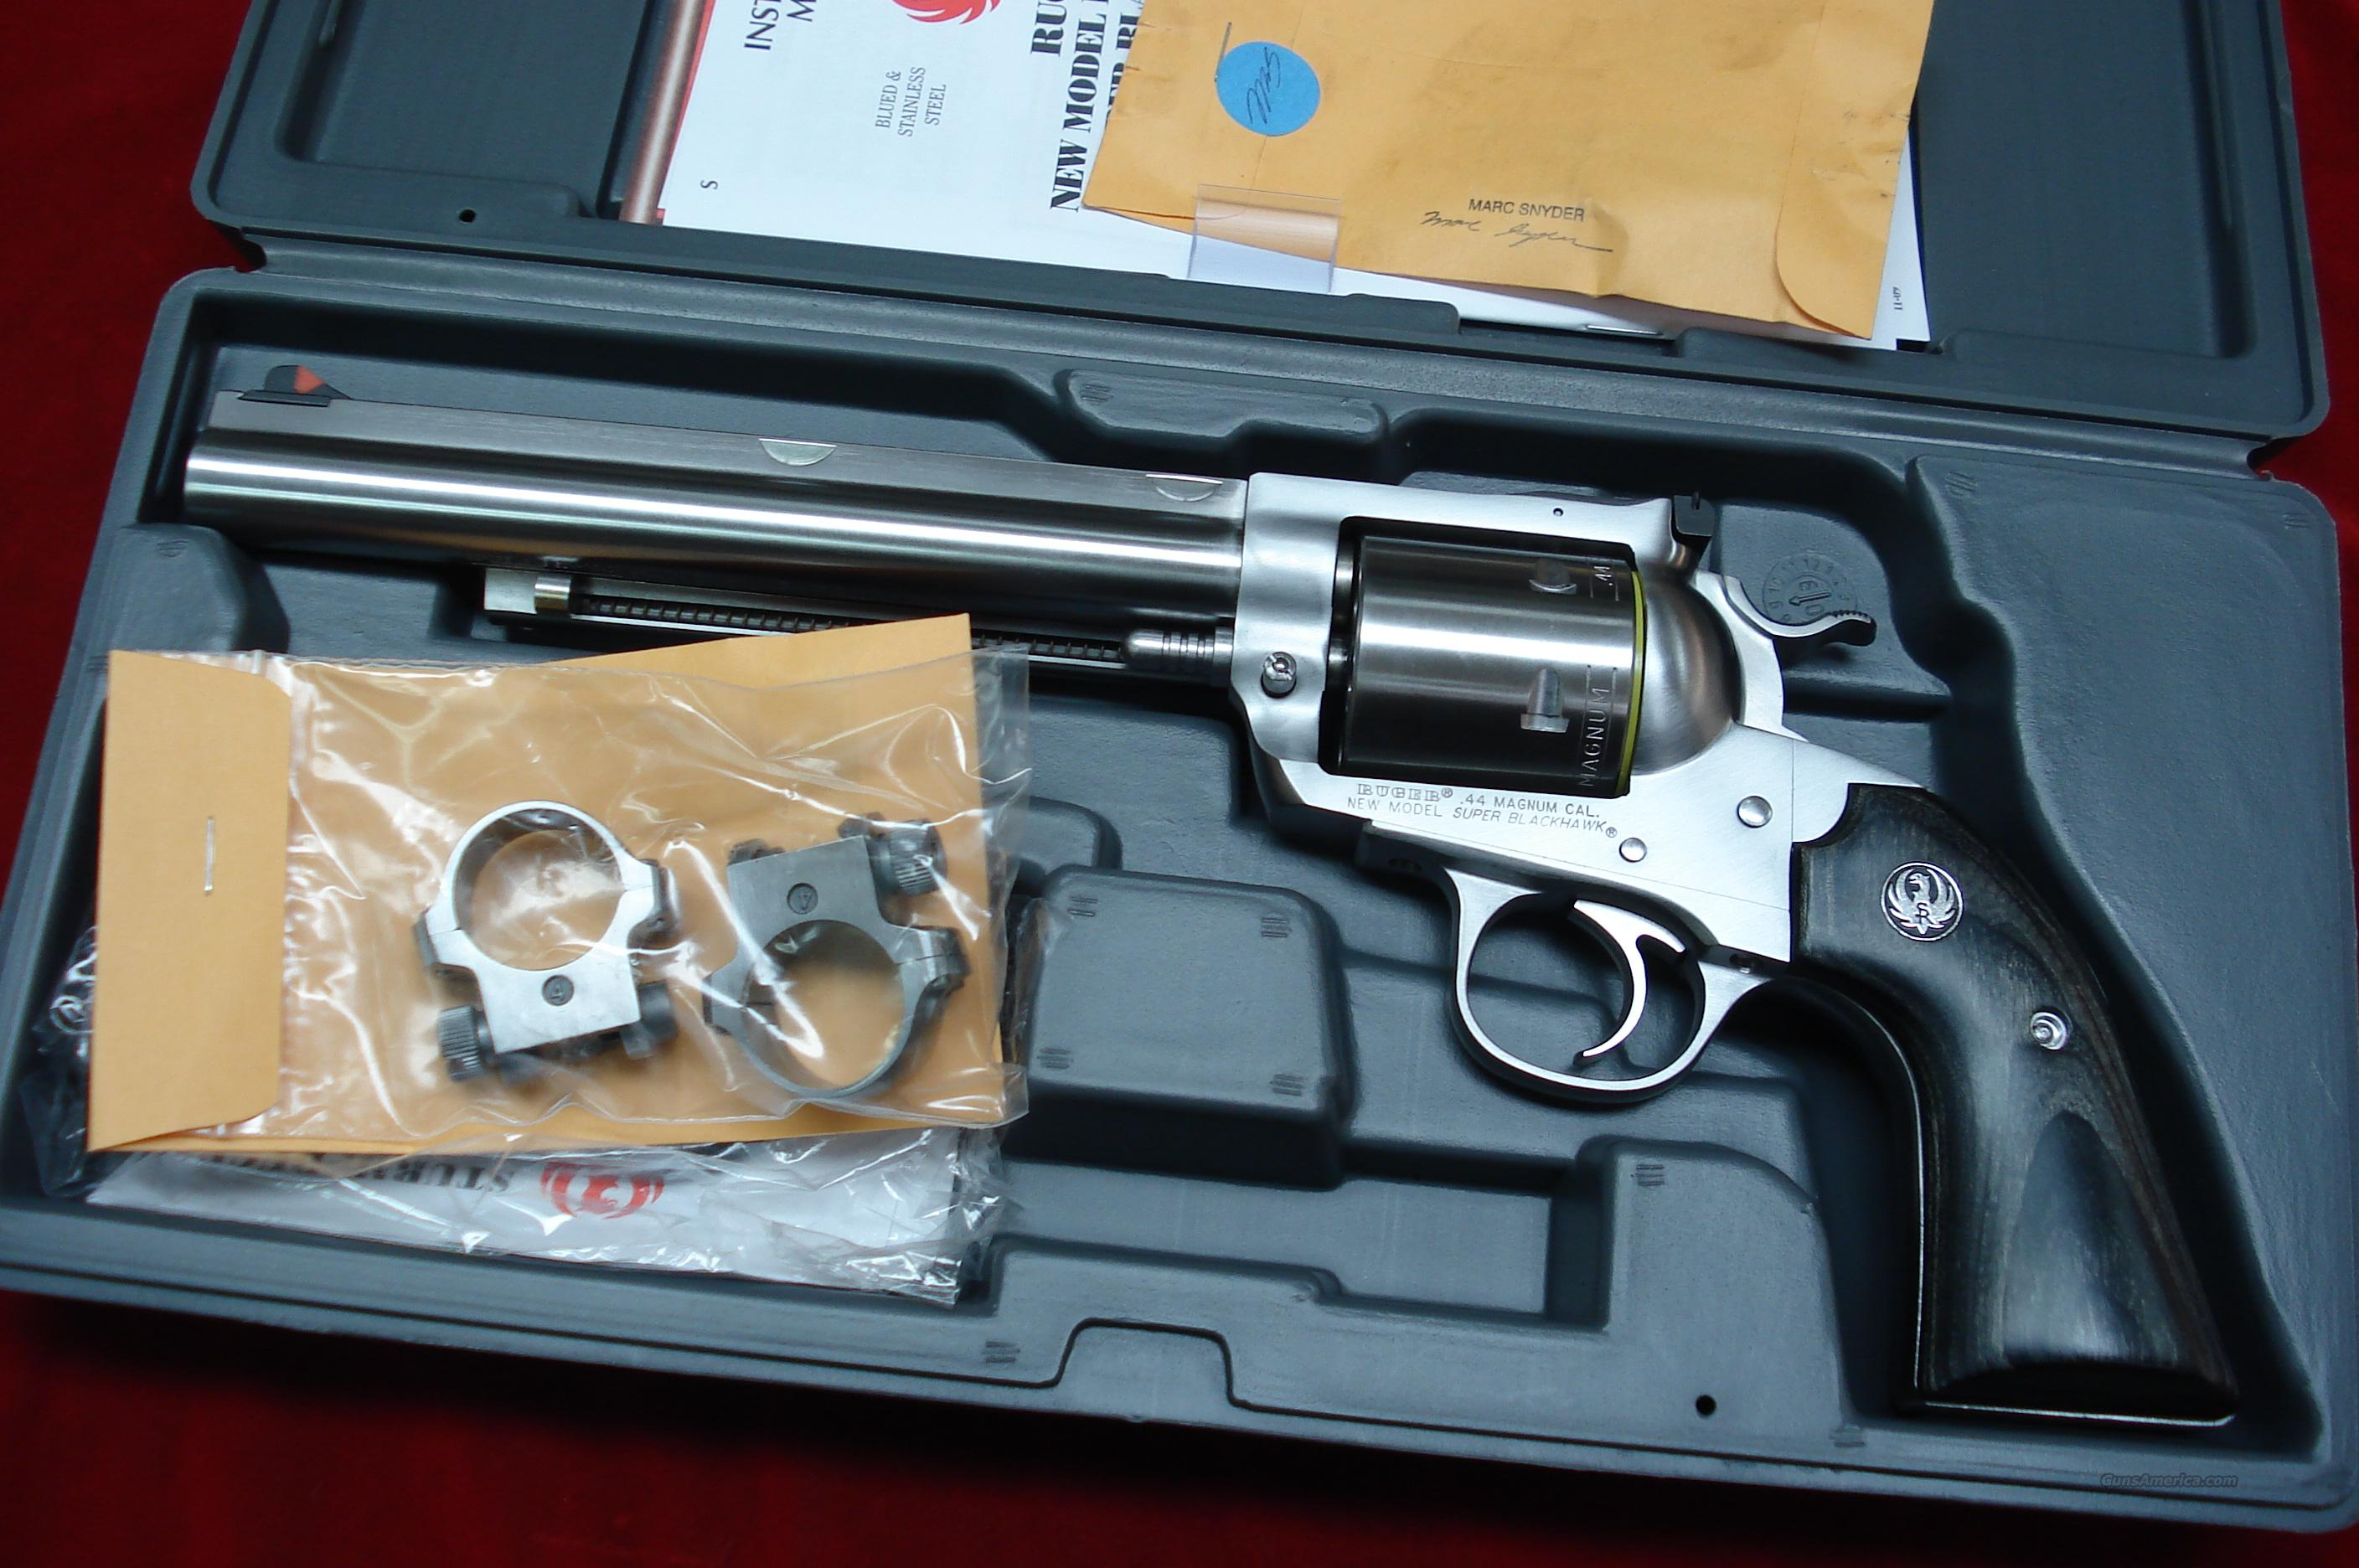 "RUGER BISLEY SUPER  BLACKHAWK HUNTER 7.5"" STAINLESS  44MAG WITH RINGS NEW  (KS-47NHB)  Guns > Pistols > Ruger Single Action Revolvers > Blackhawk Type"